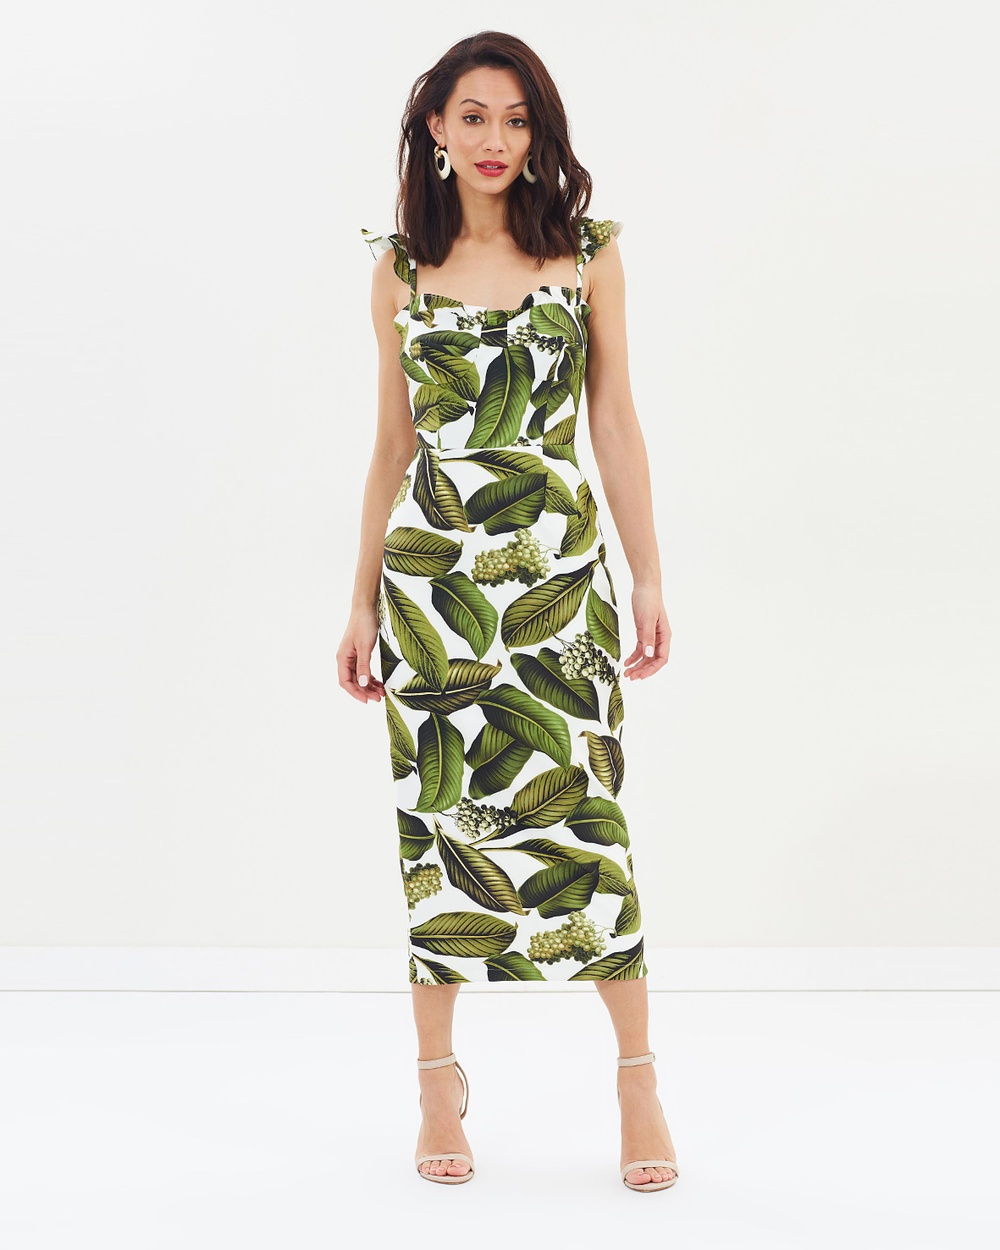 Pasduchas Vineyard Bustier Midi Dress Printed Dresses Leaf Vineyard Bustier Midi Dress